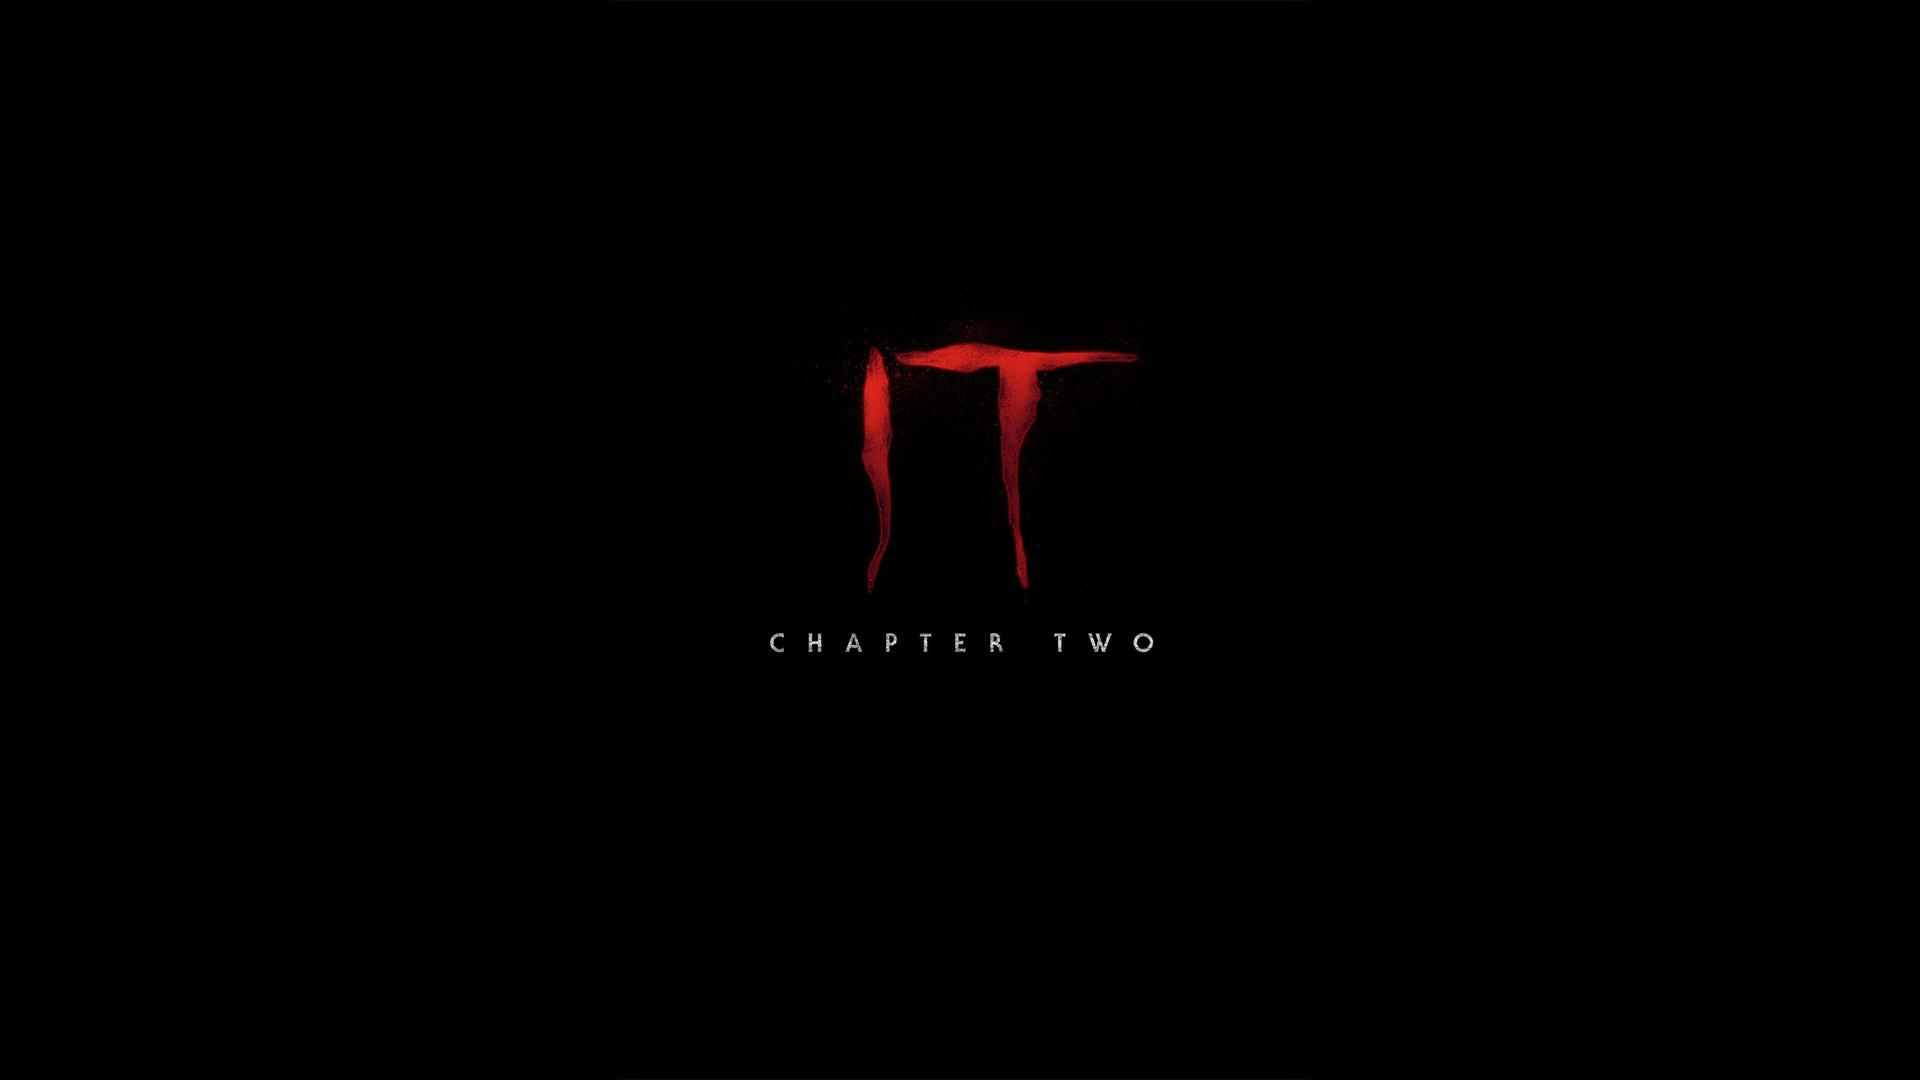 It Chapter 2 Movie 2019, HD Movies, 4k Wallpapers, Image